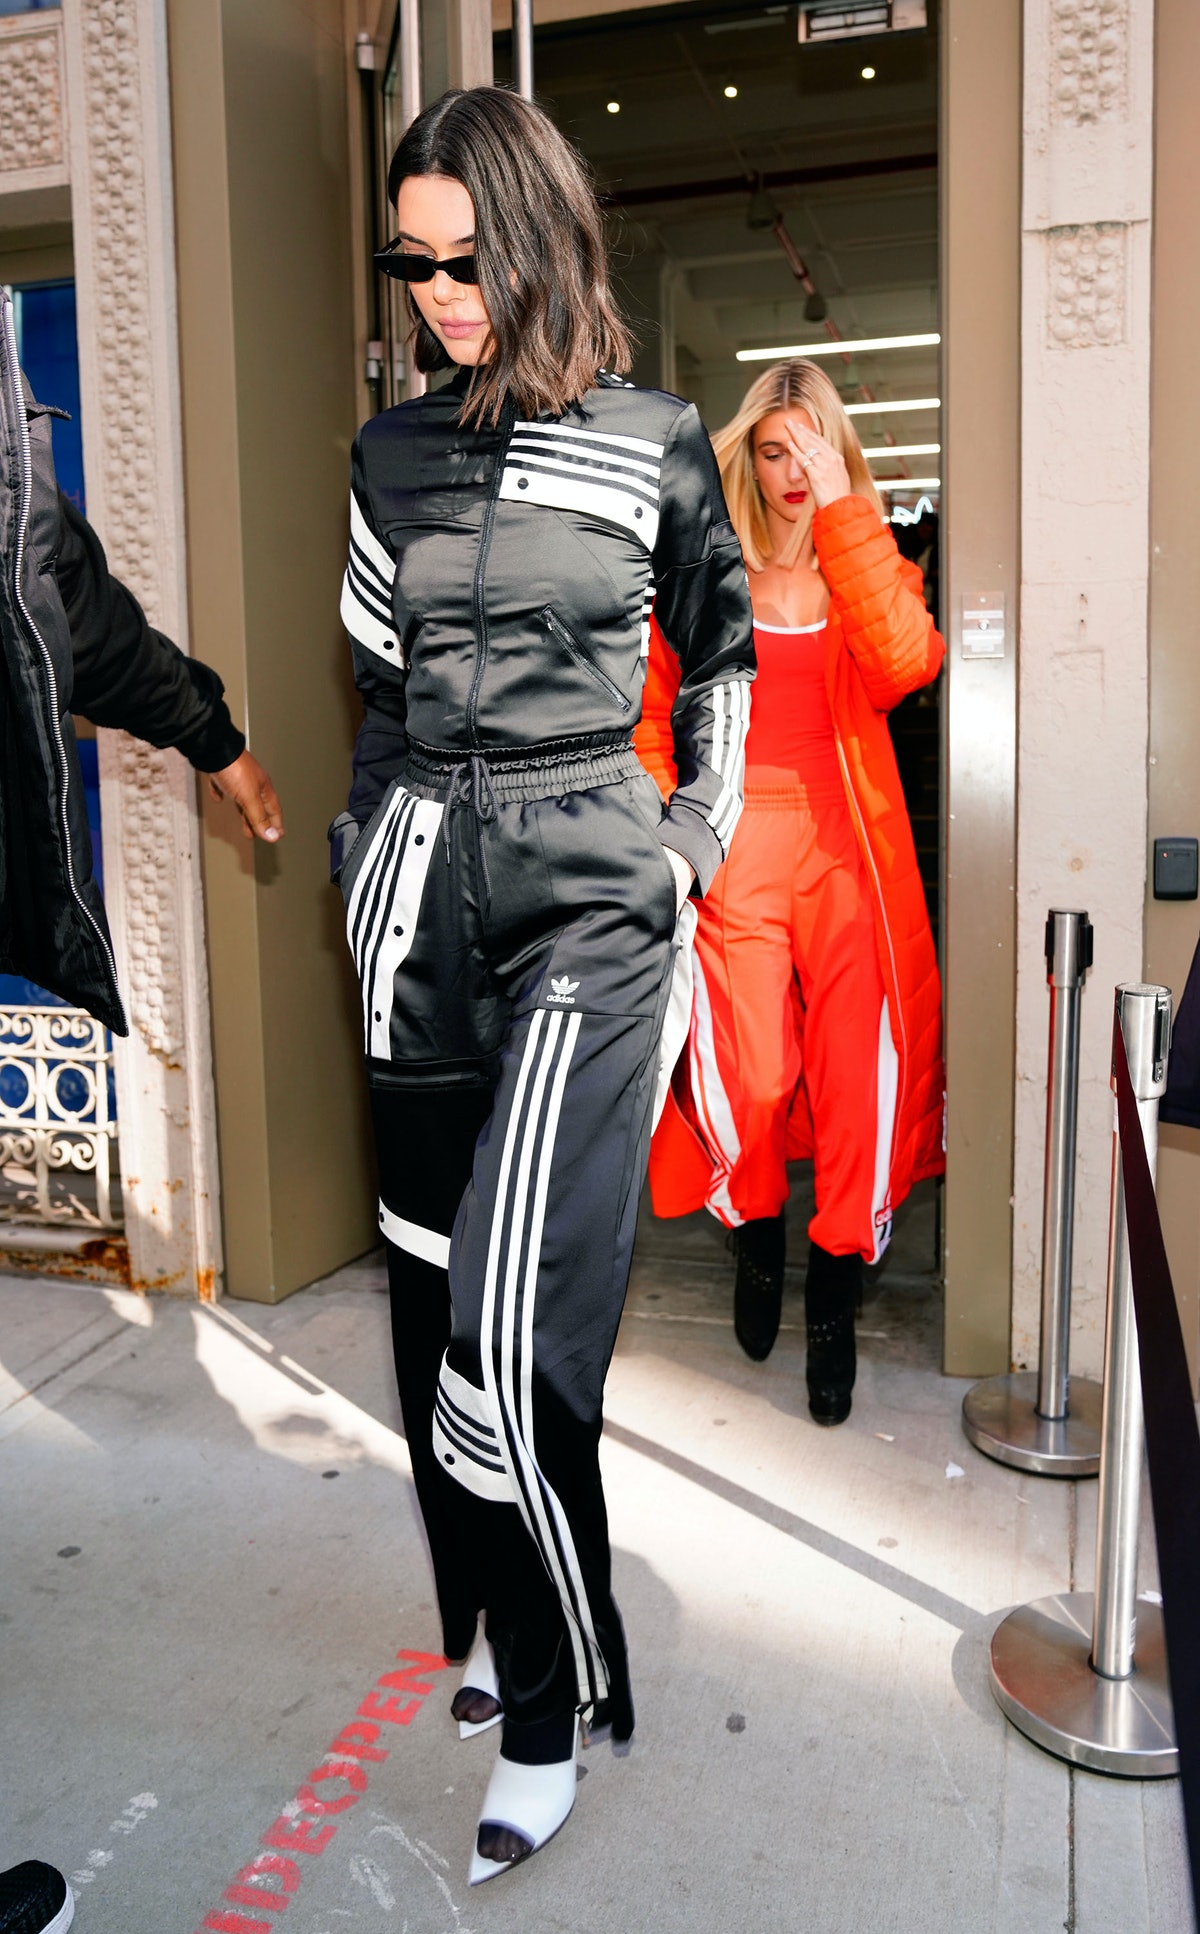 NEW YORK, NY - FEBRUARY 08:  Kendall Jenner and Hailey Baldwin return to their hotel on February 8, ...